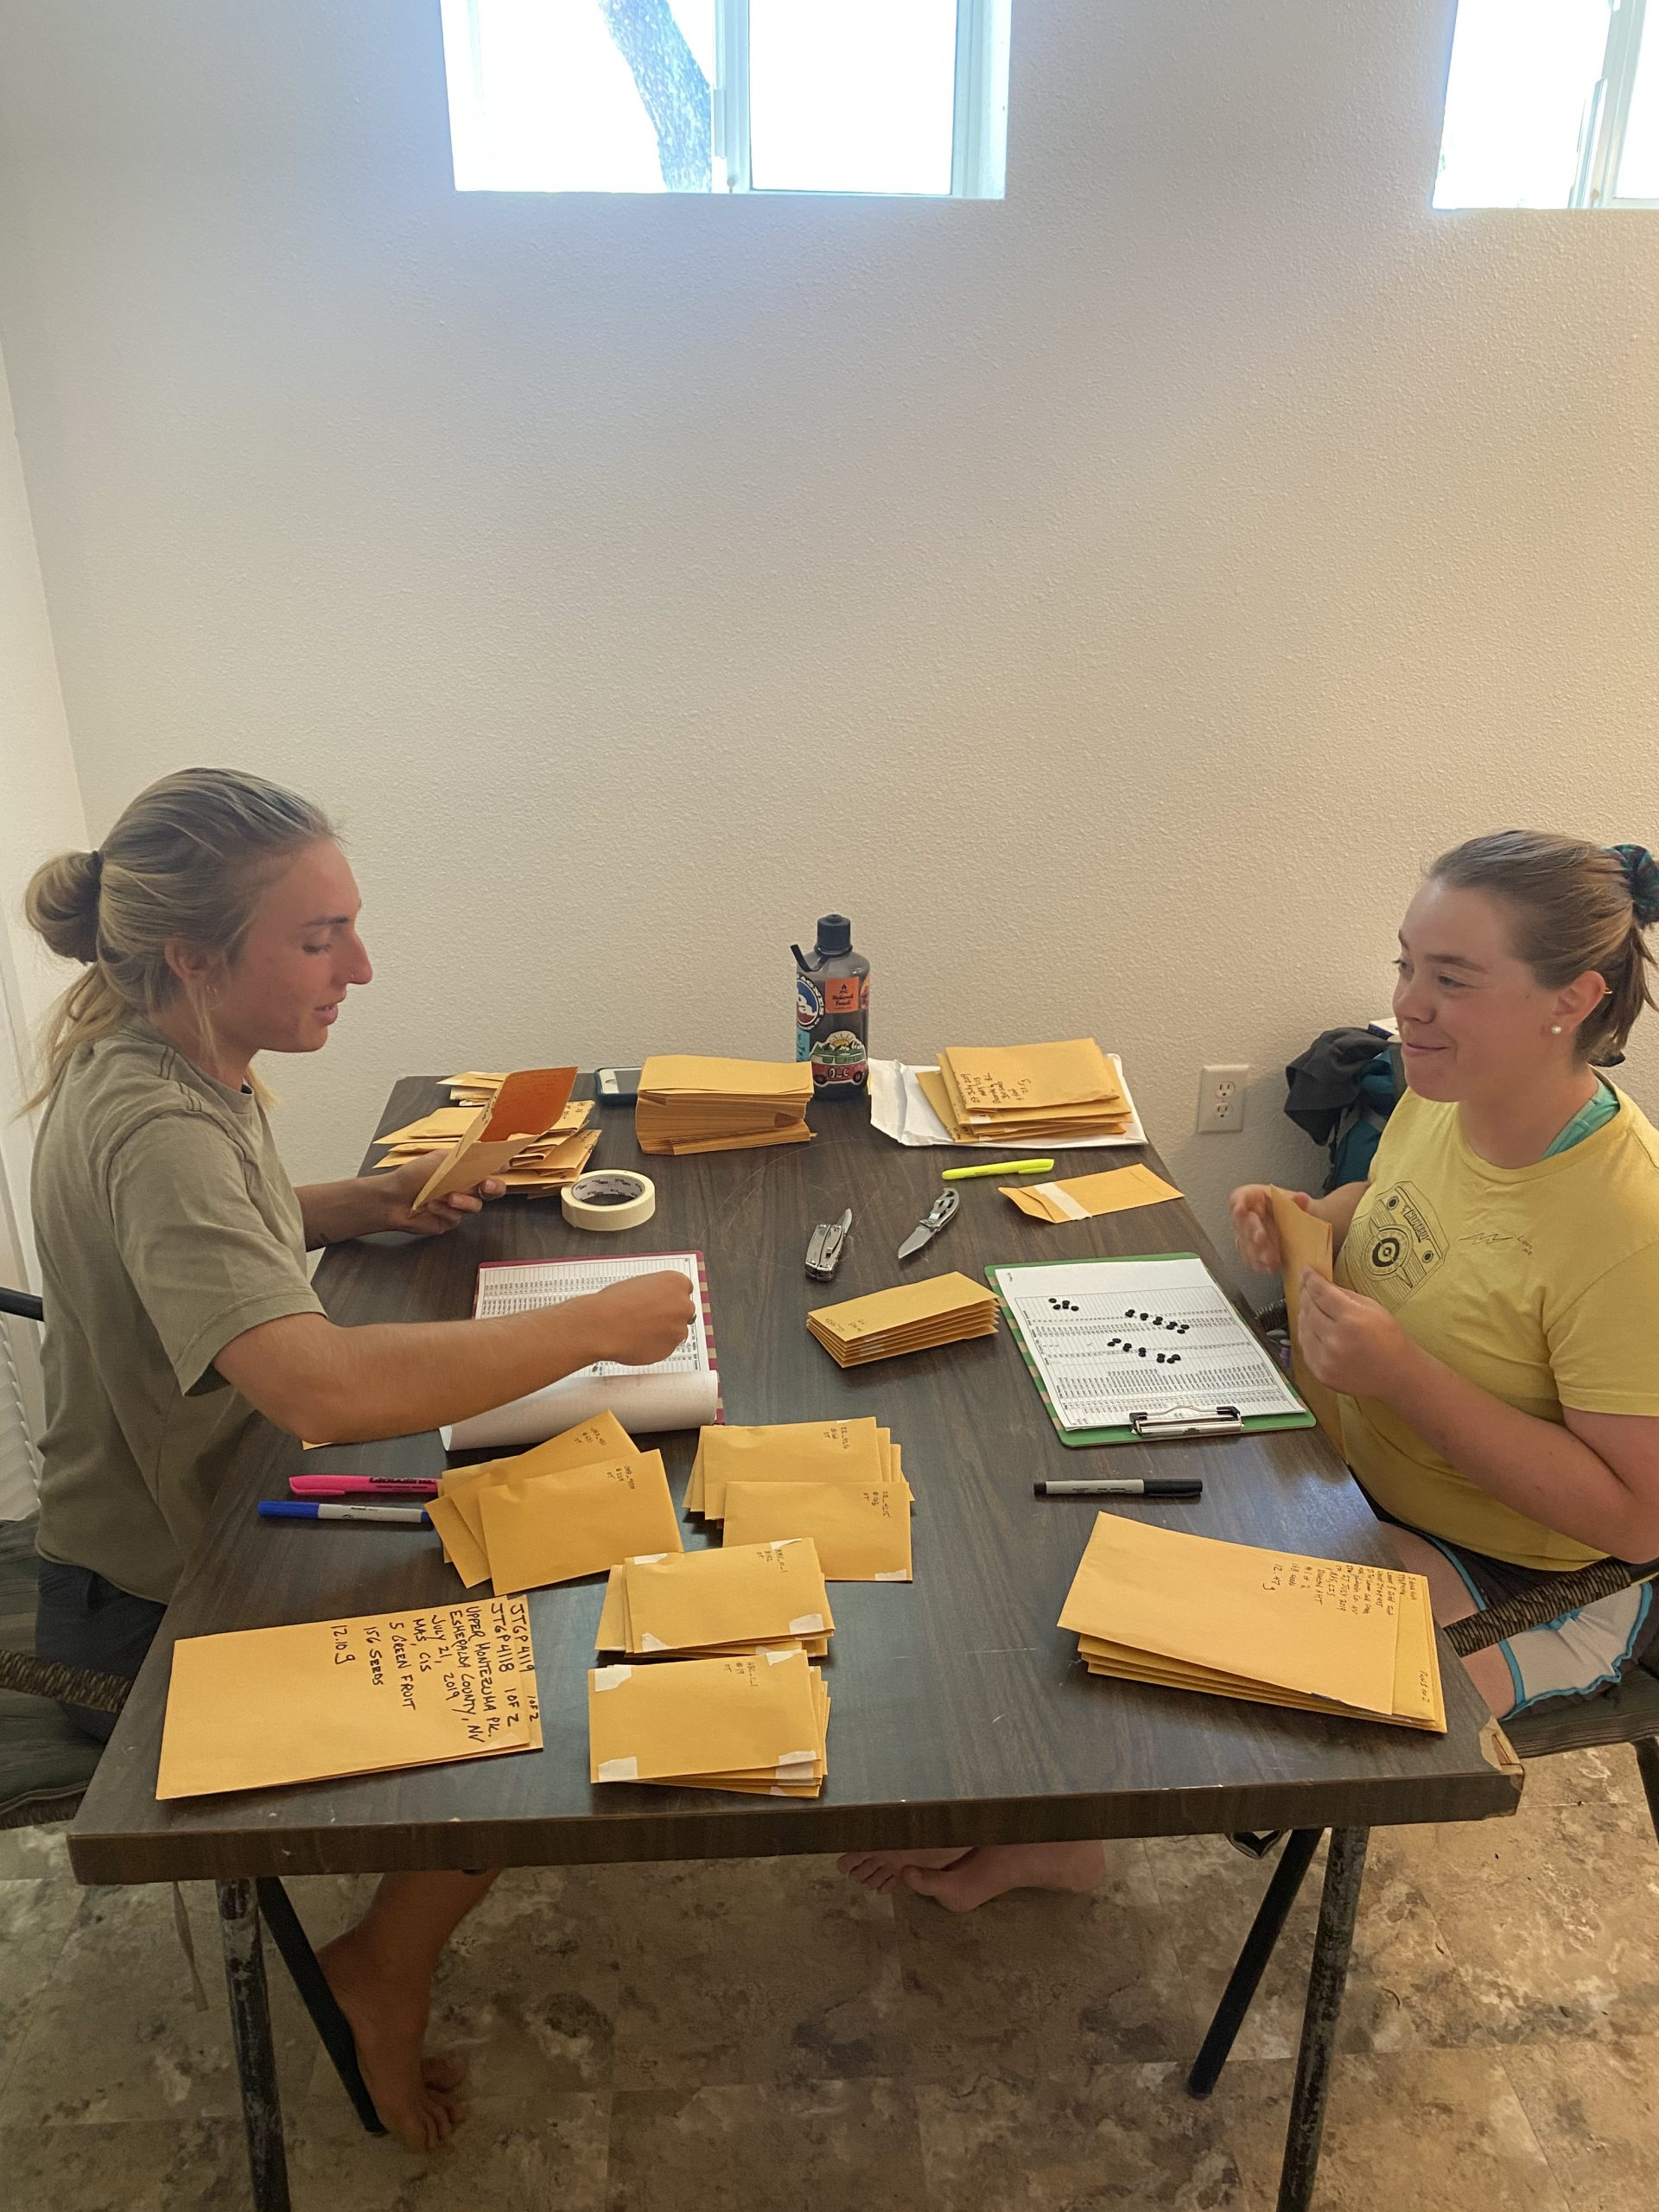 Two young women sit across from each other at a table covered in envelopes and Joshua tree fruits